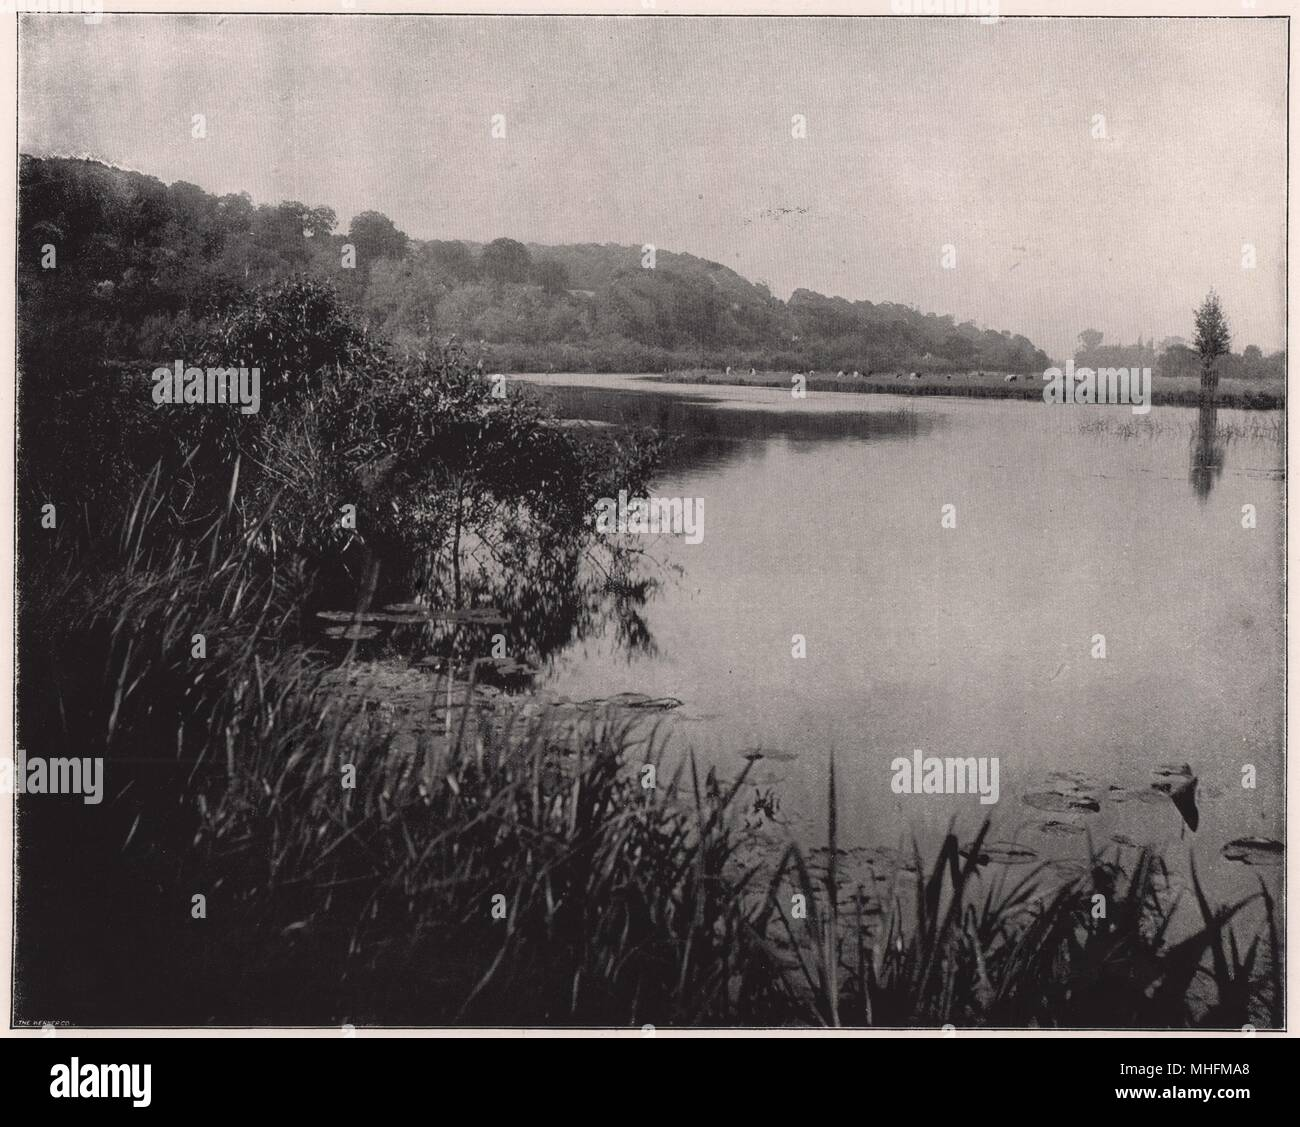 Hurley Reach, between Bisham and Medmenham, is an example of that peculiar combination of scenery which is one of the greatest … Stock Photo